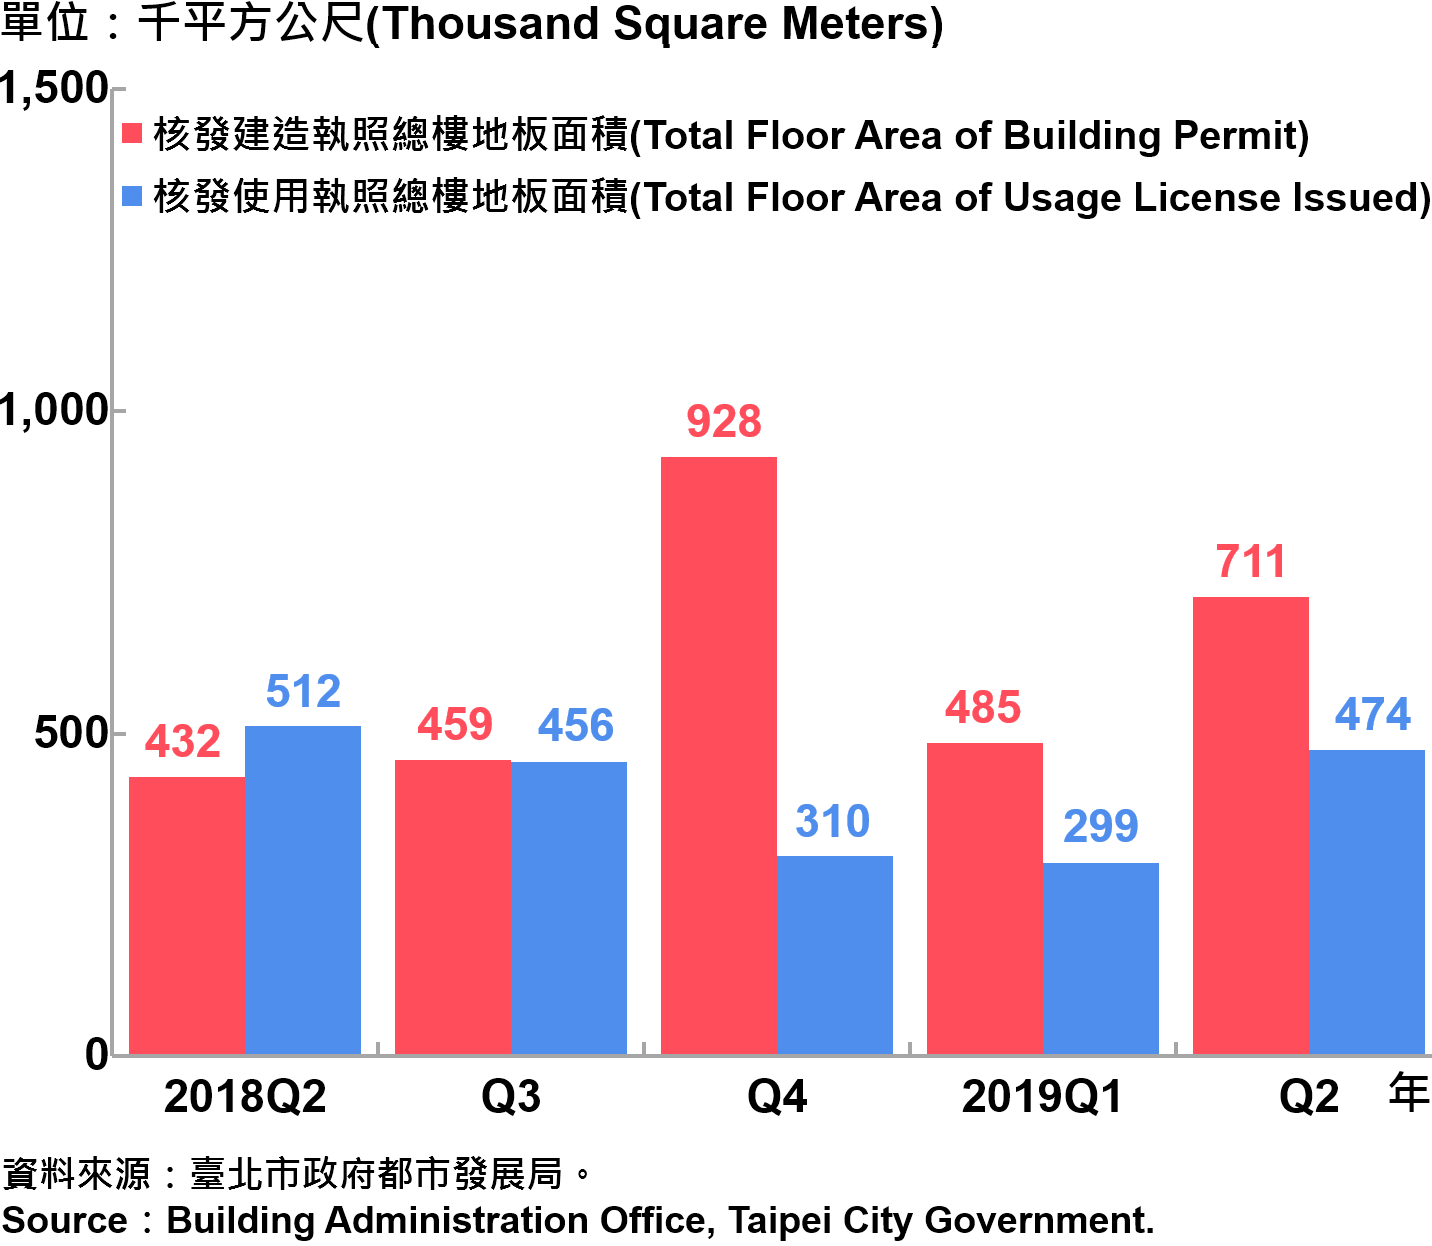 臺北市核發建築物執照與使用執照總樓地板面積—2019Q2 Total Floor Area of Building Permit and Usage License Issued in Taipei City—2019Q2